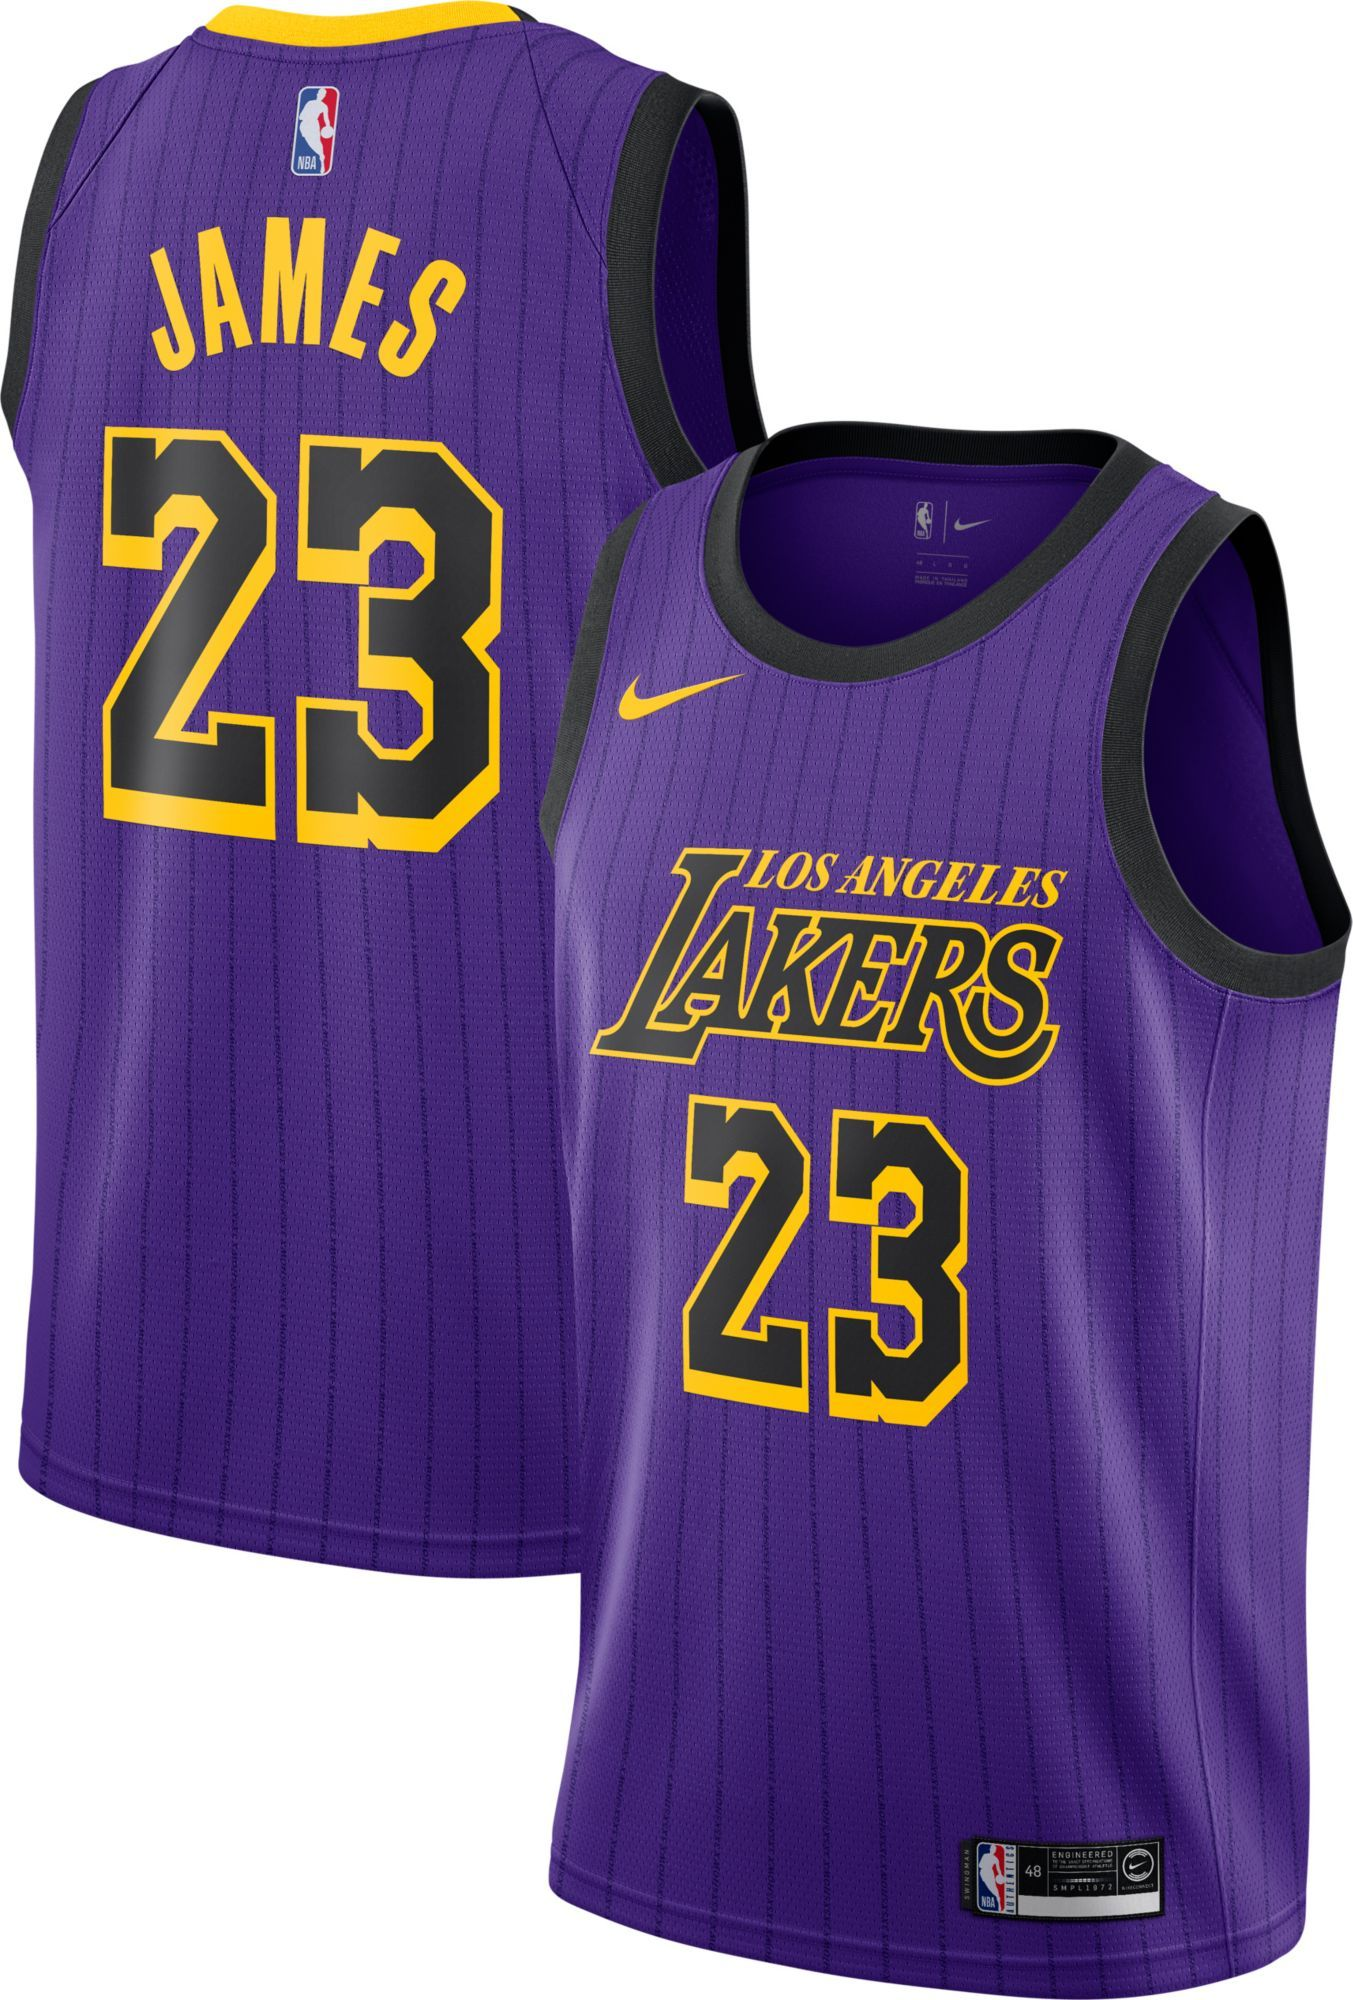 buy popular 2c1fa 00d95 Nike Men's Los Angeles Lakers LeBron James Dri-FIT City ...